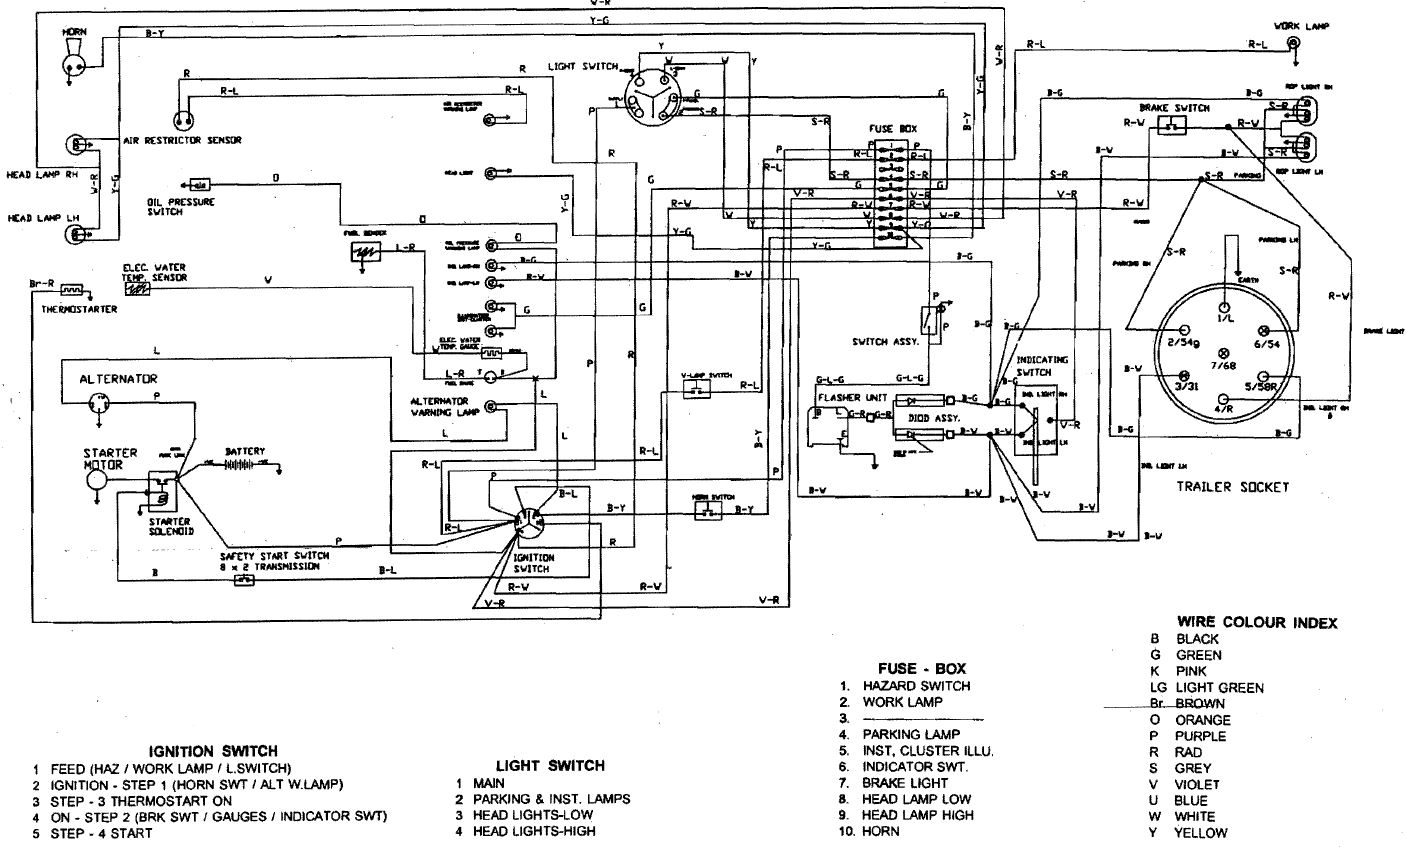 20158463319_b82d524c3d_o ignition switch wiring diagram john deere ignition wiring diagram at fashall.co